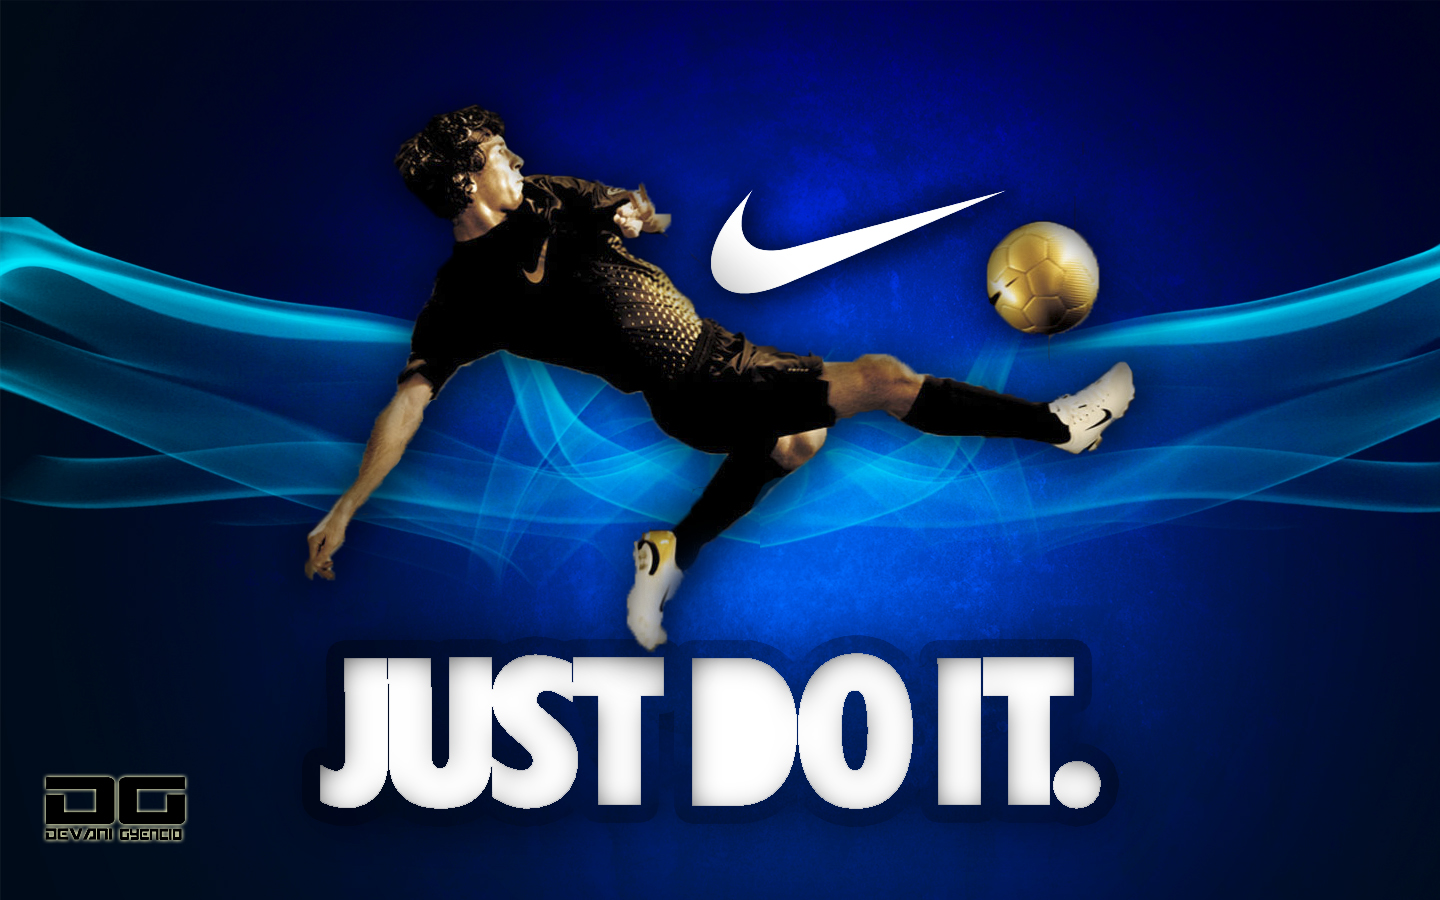 Nike Just Do It Football Nike wallpaper Nike Just Do It Football